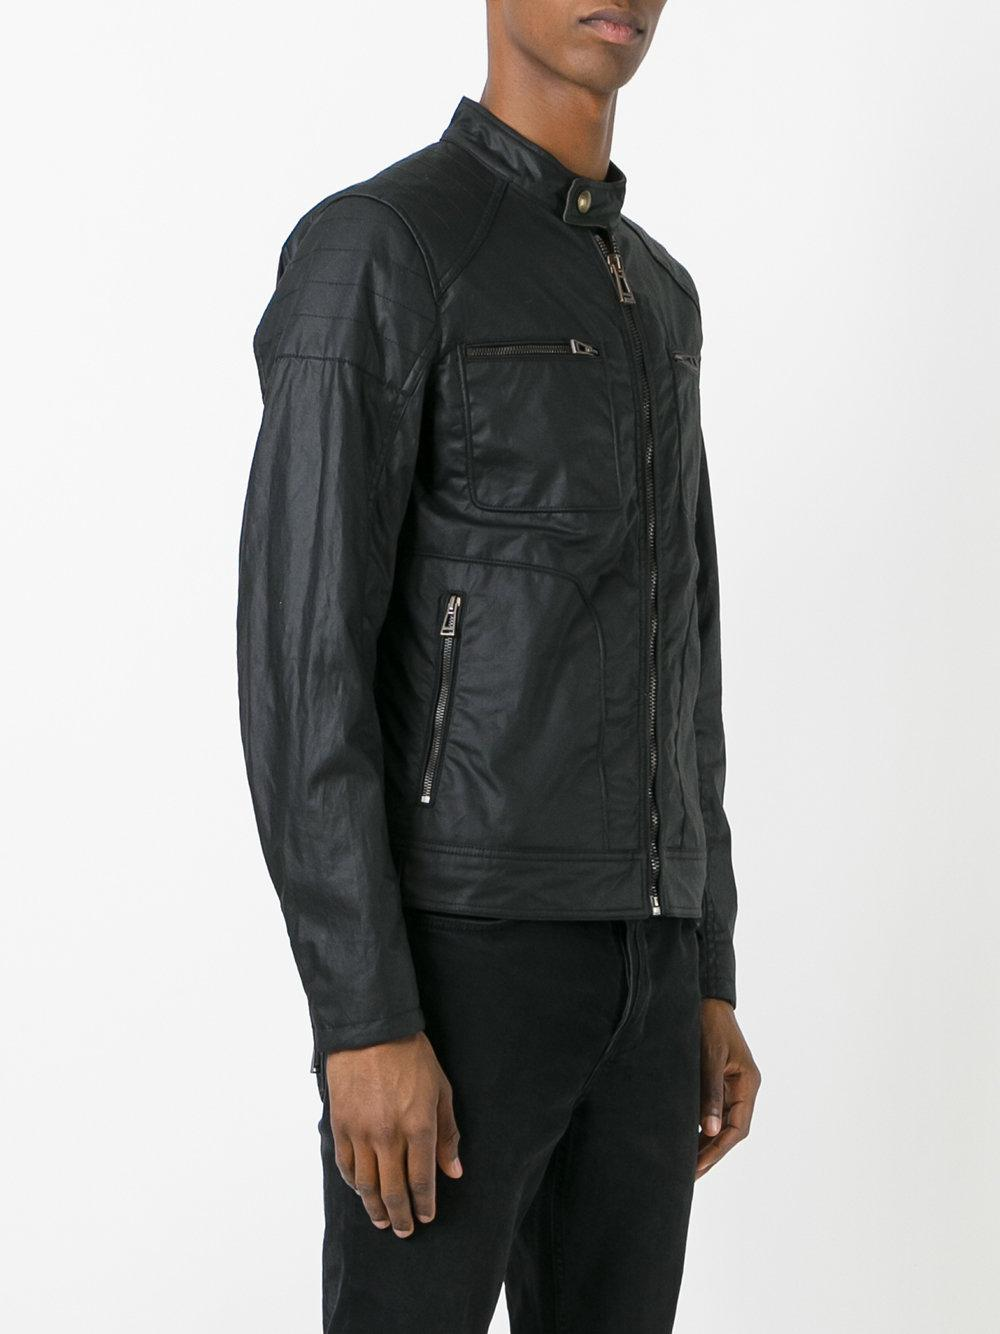 lyst belstaff weybridge 2017 jacket in black for men. Black Bedroom Furniture Sets. Home Design Ideas